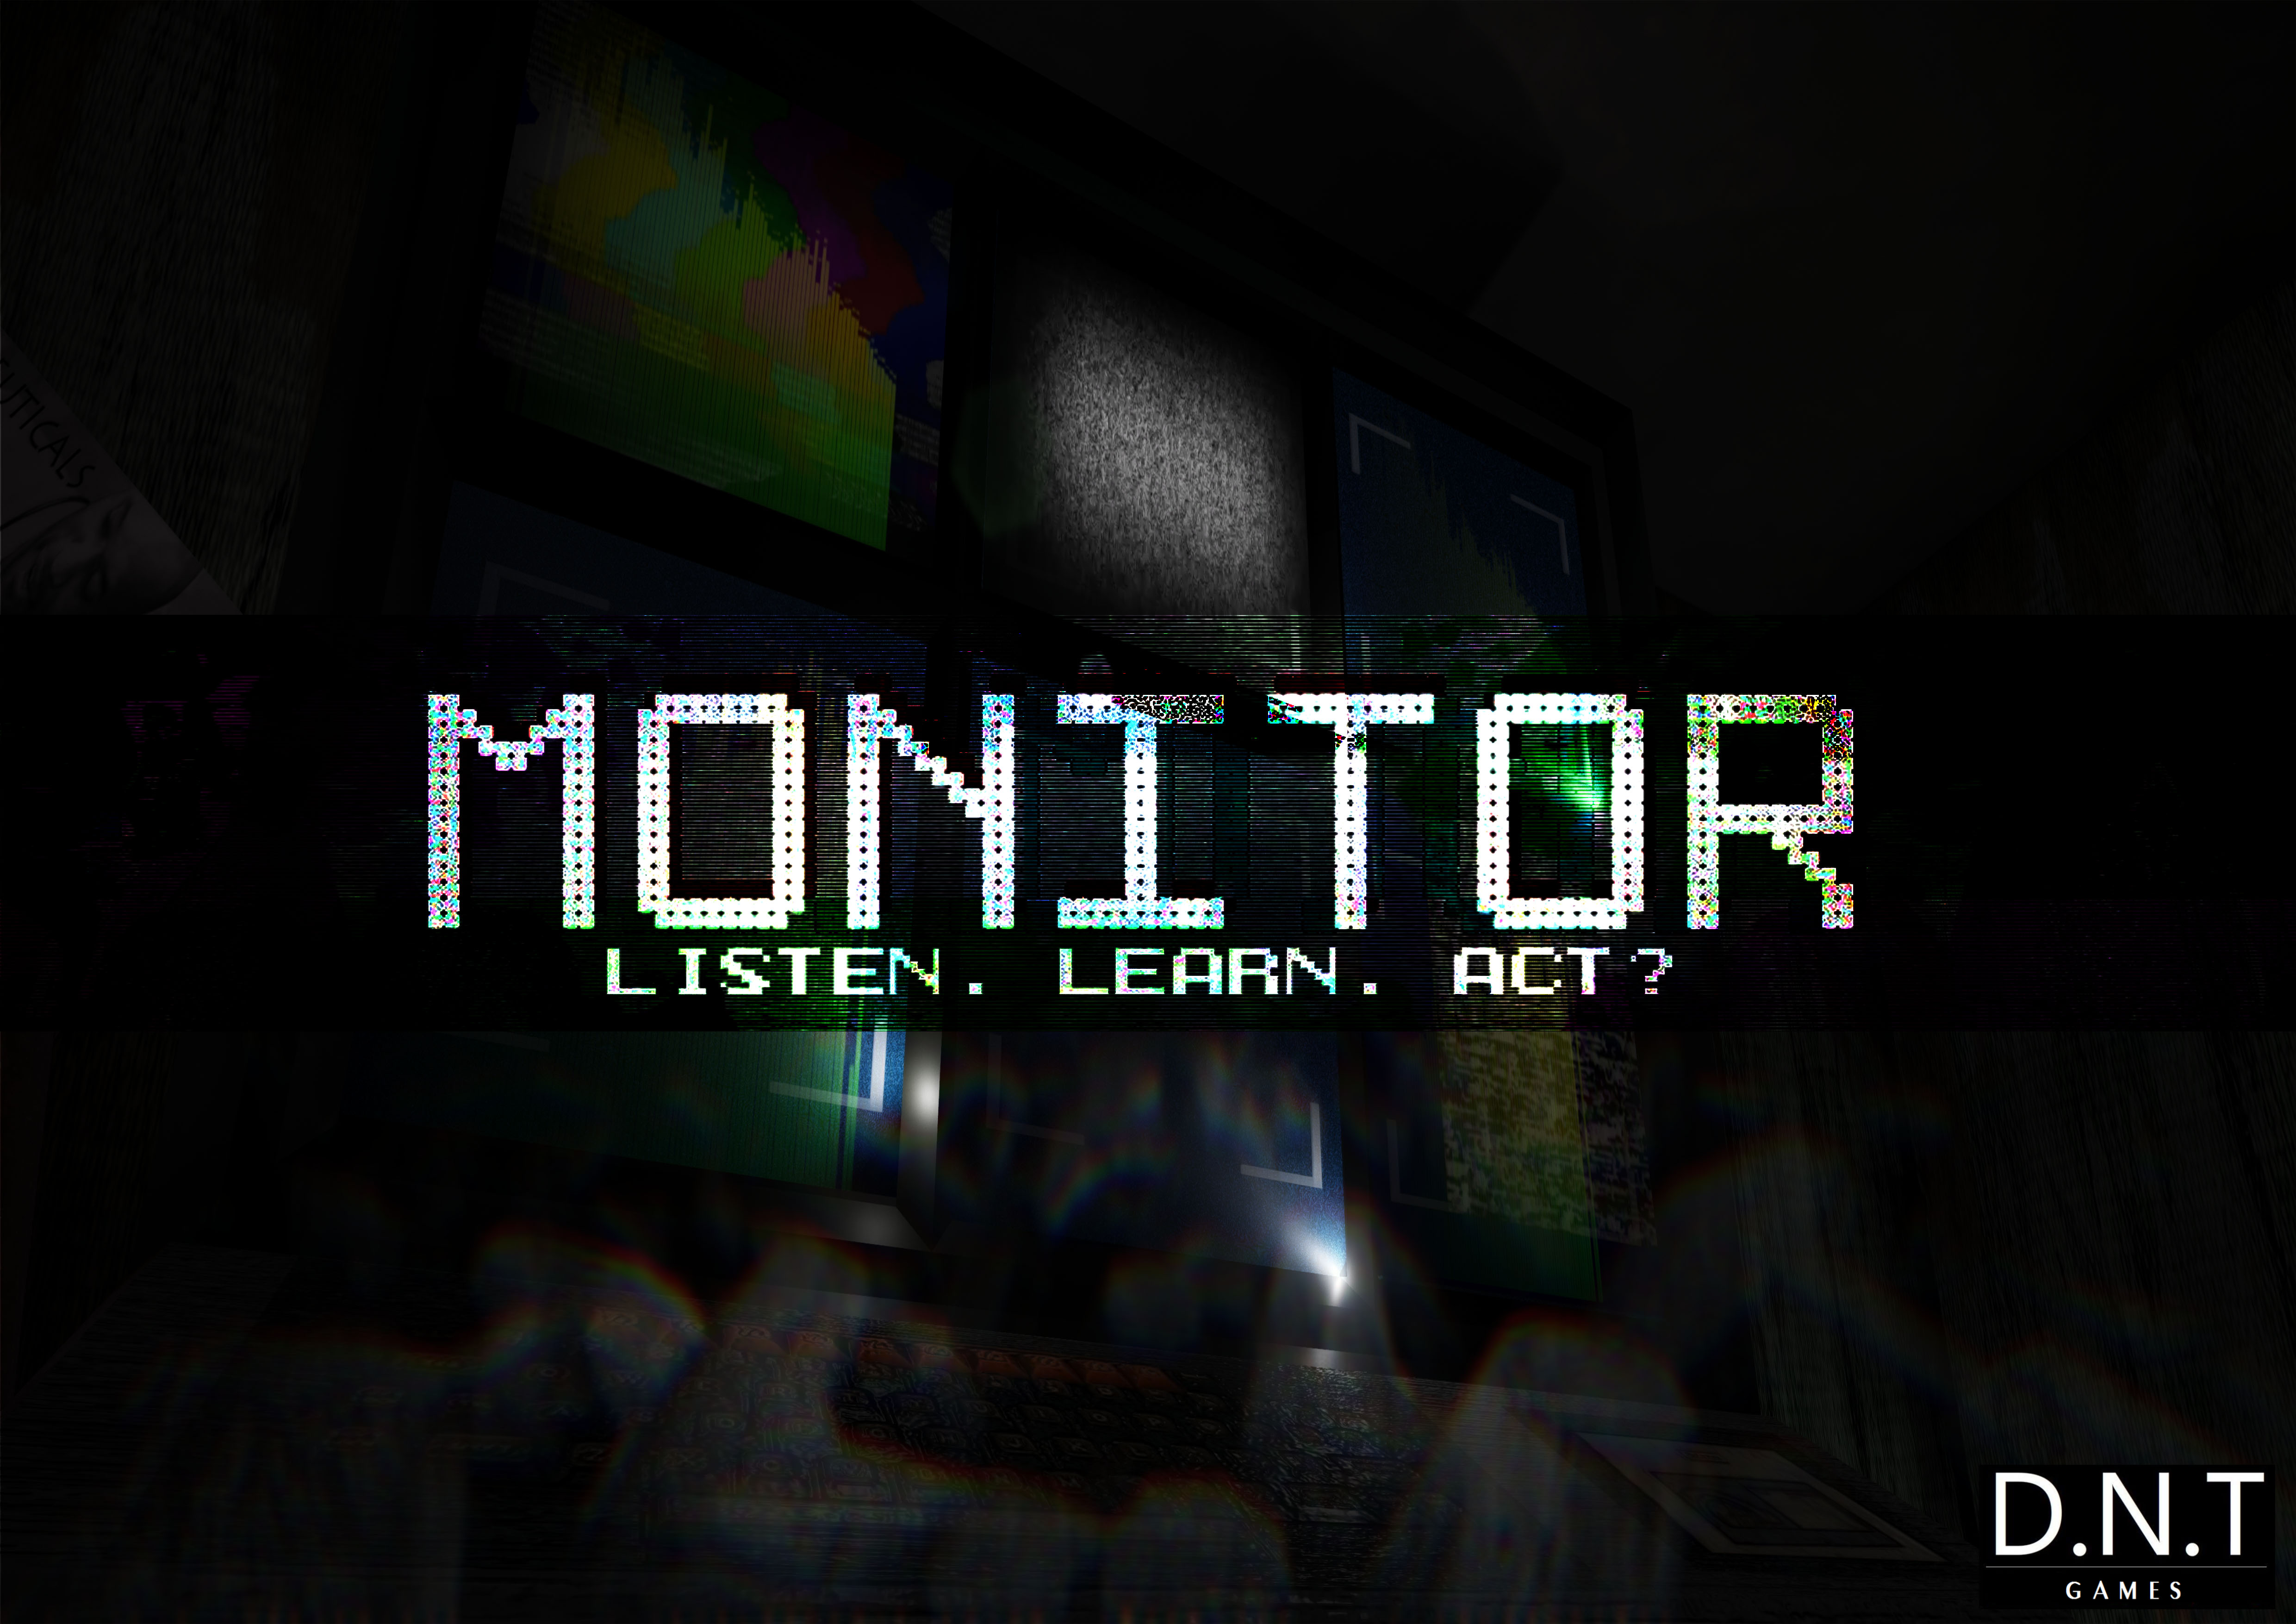 MONITOR: The Game